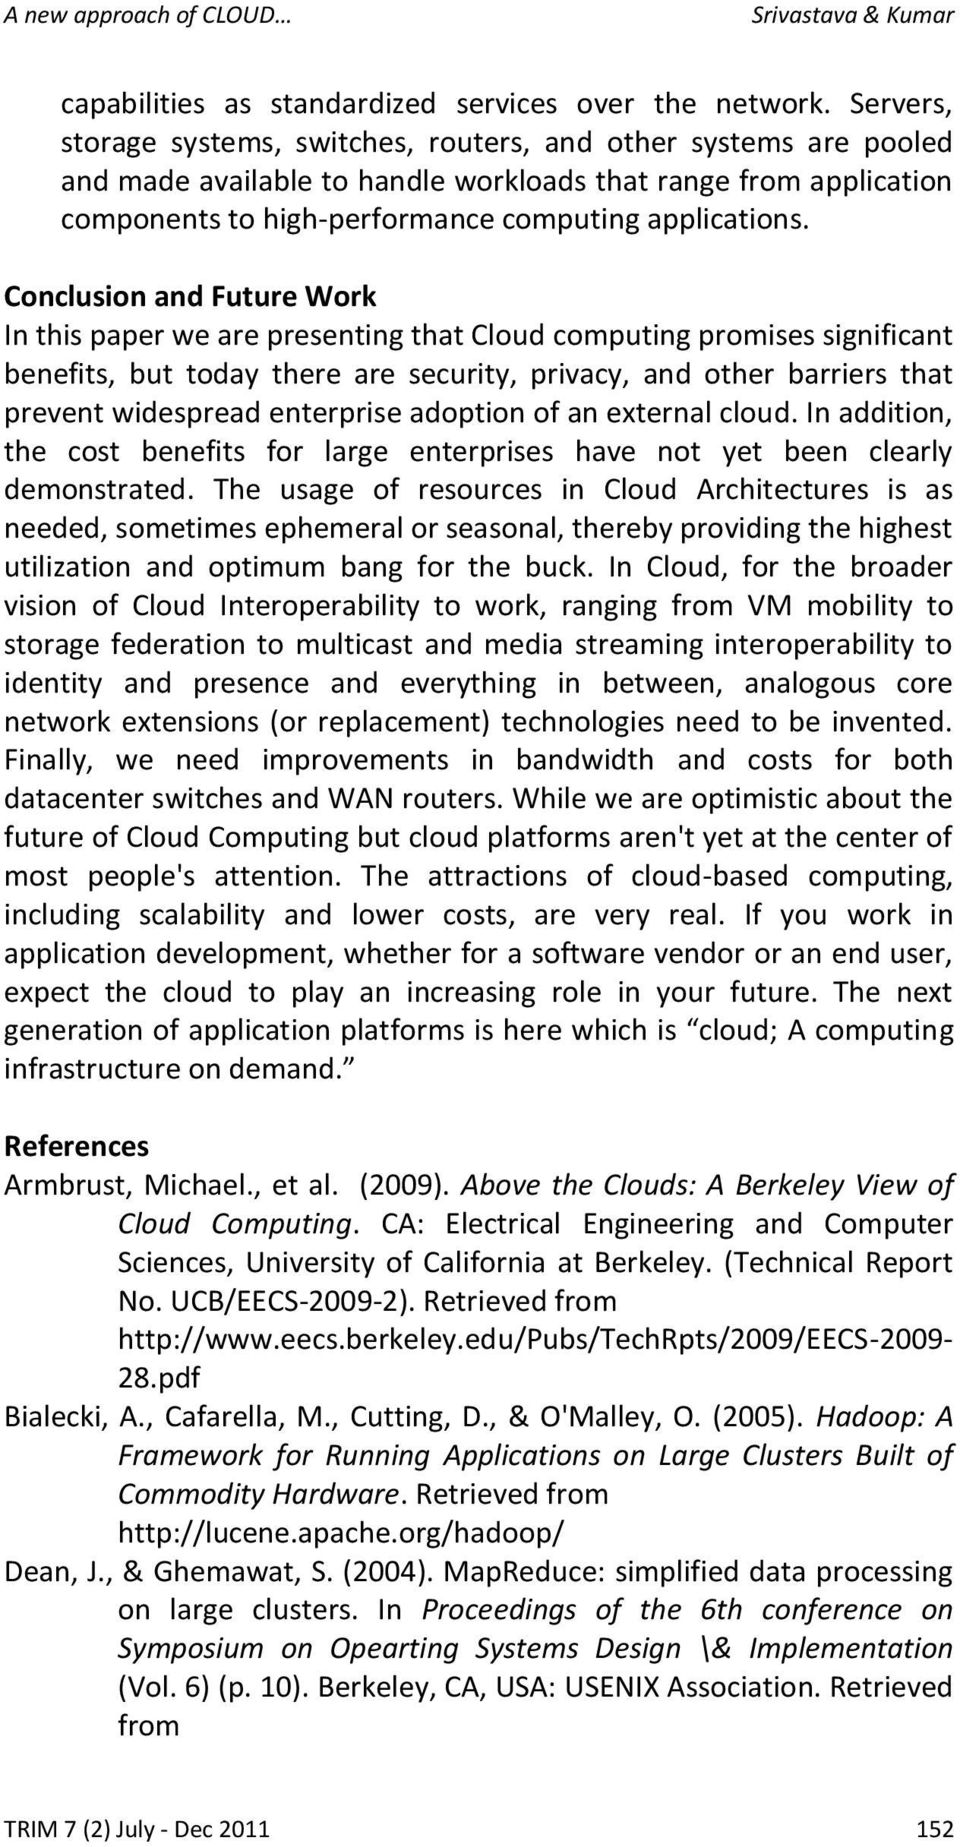 Conclusion and Future Work In this paper we are presenting that Cloud computing promises significant benefits, but today there are security, privacy, and other barriers that prevent widespread